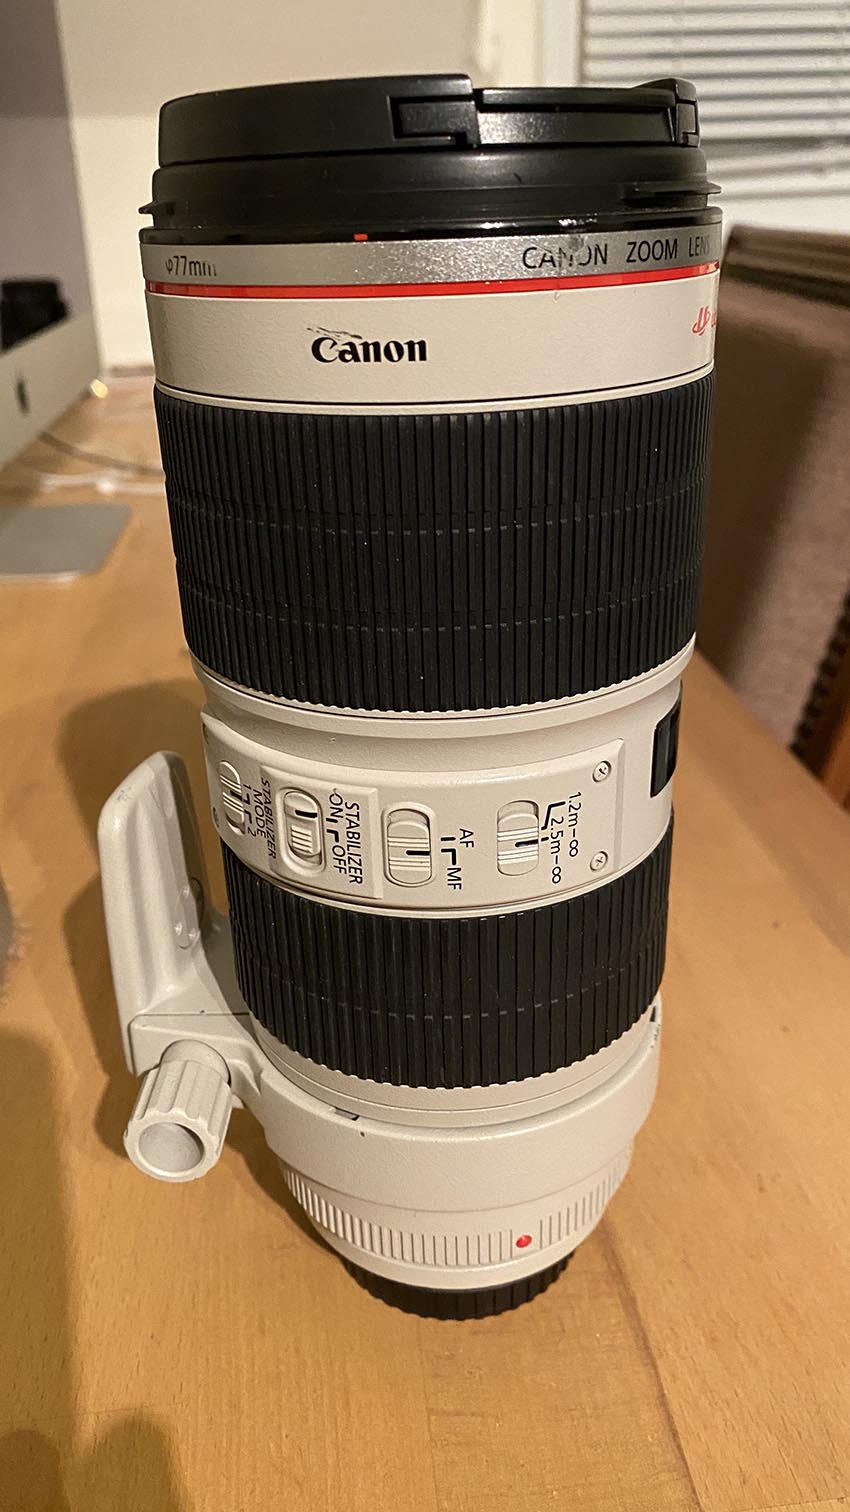 Objectif Canon 70-200 F2.8 L IS USM